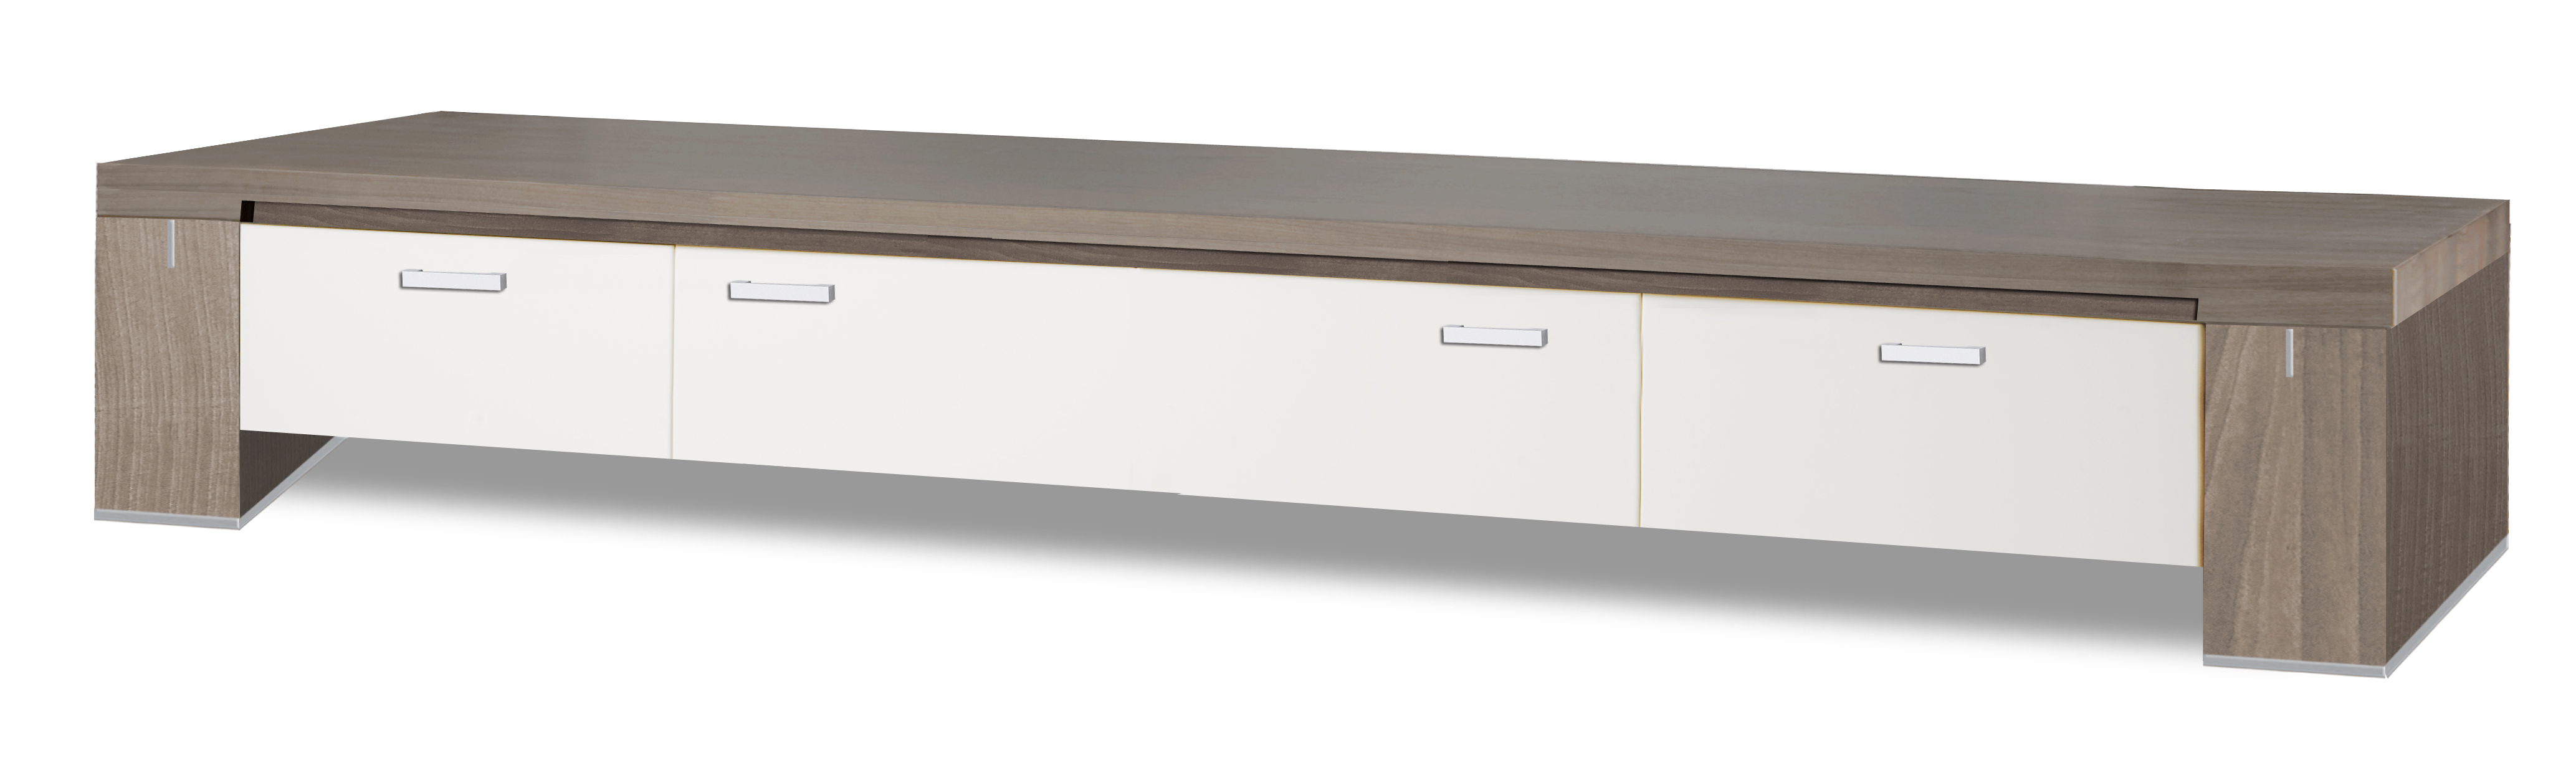 Tv Meubel Dressoir Kast.Tv Meubel Future 52 Collectie Kasten En Tafels